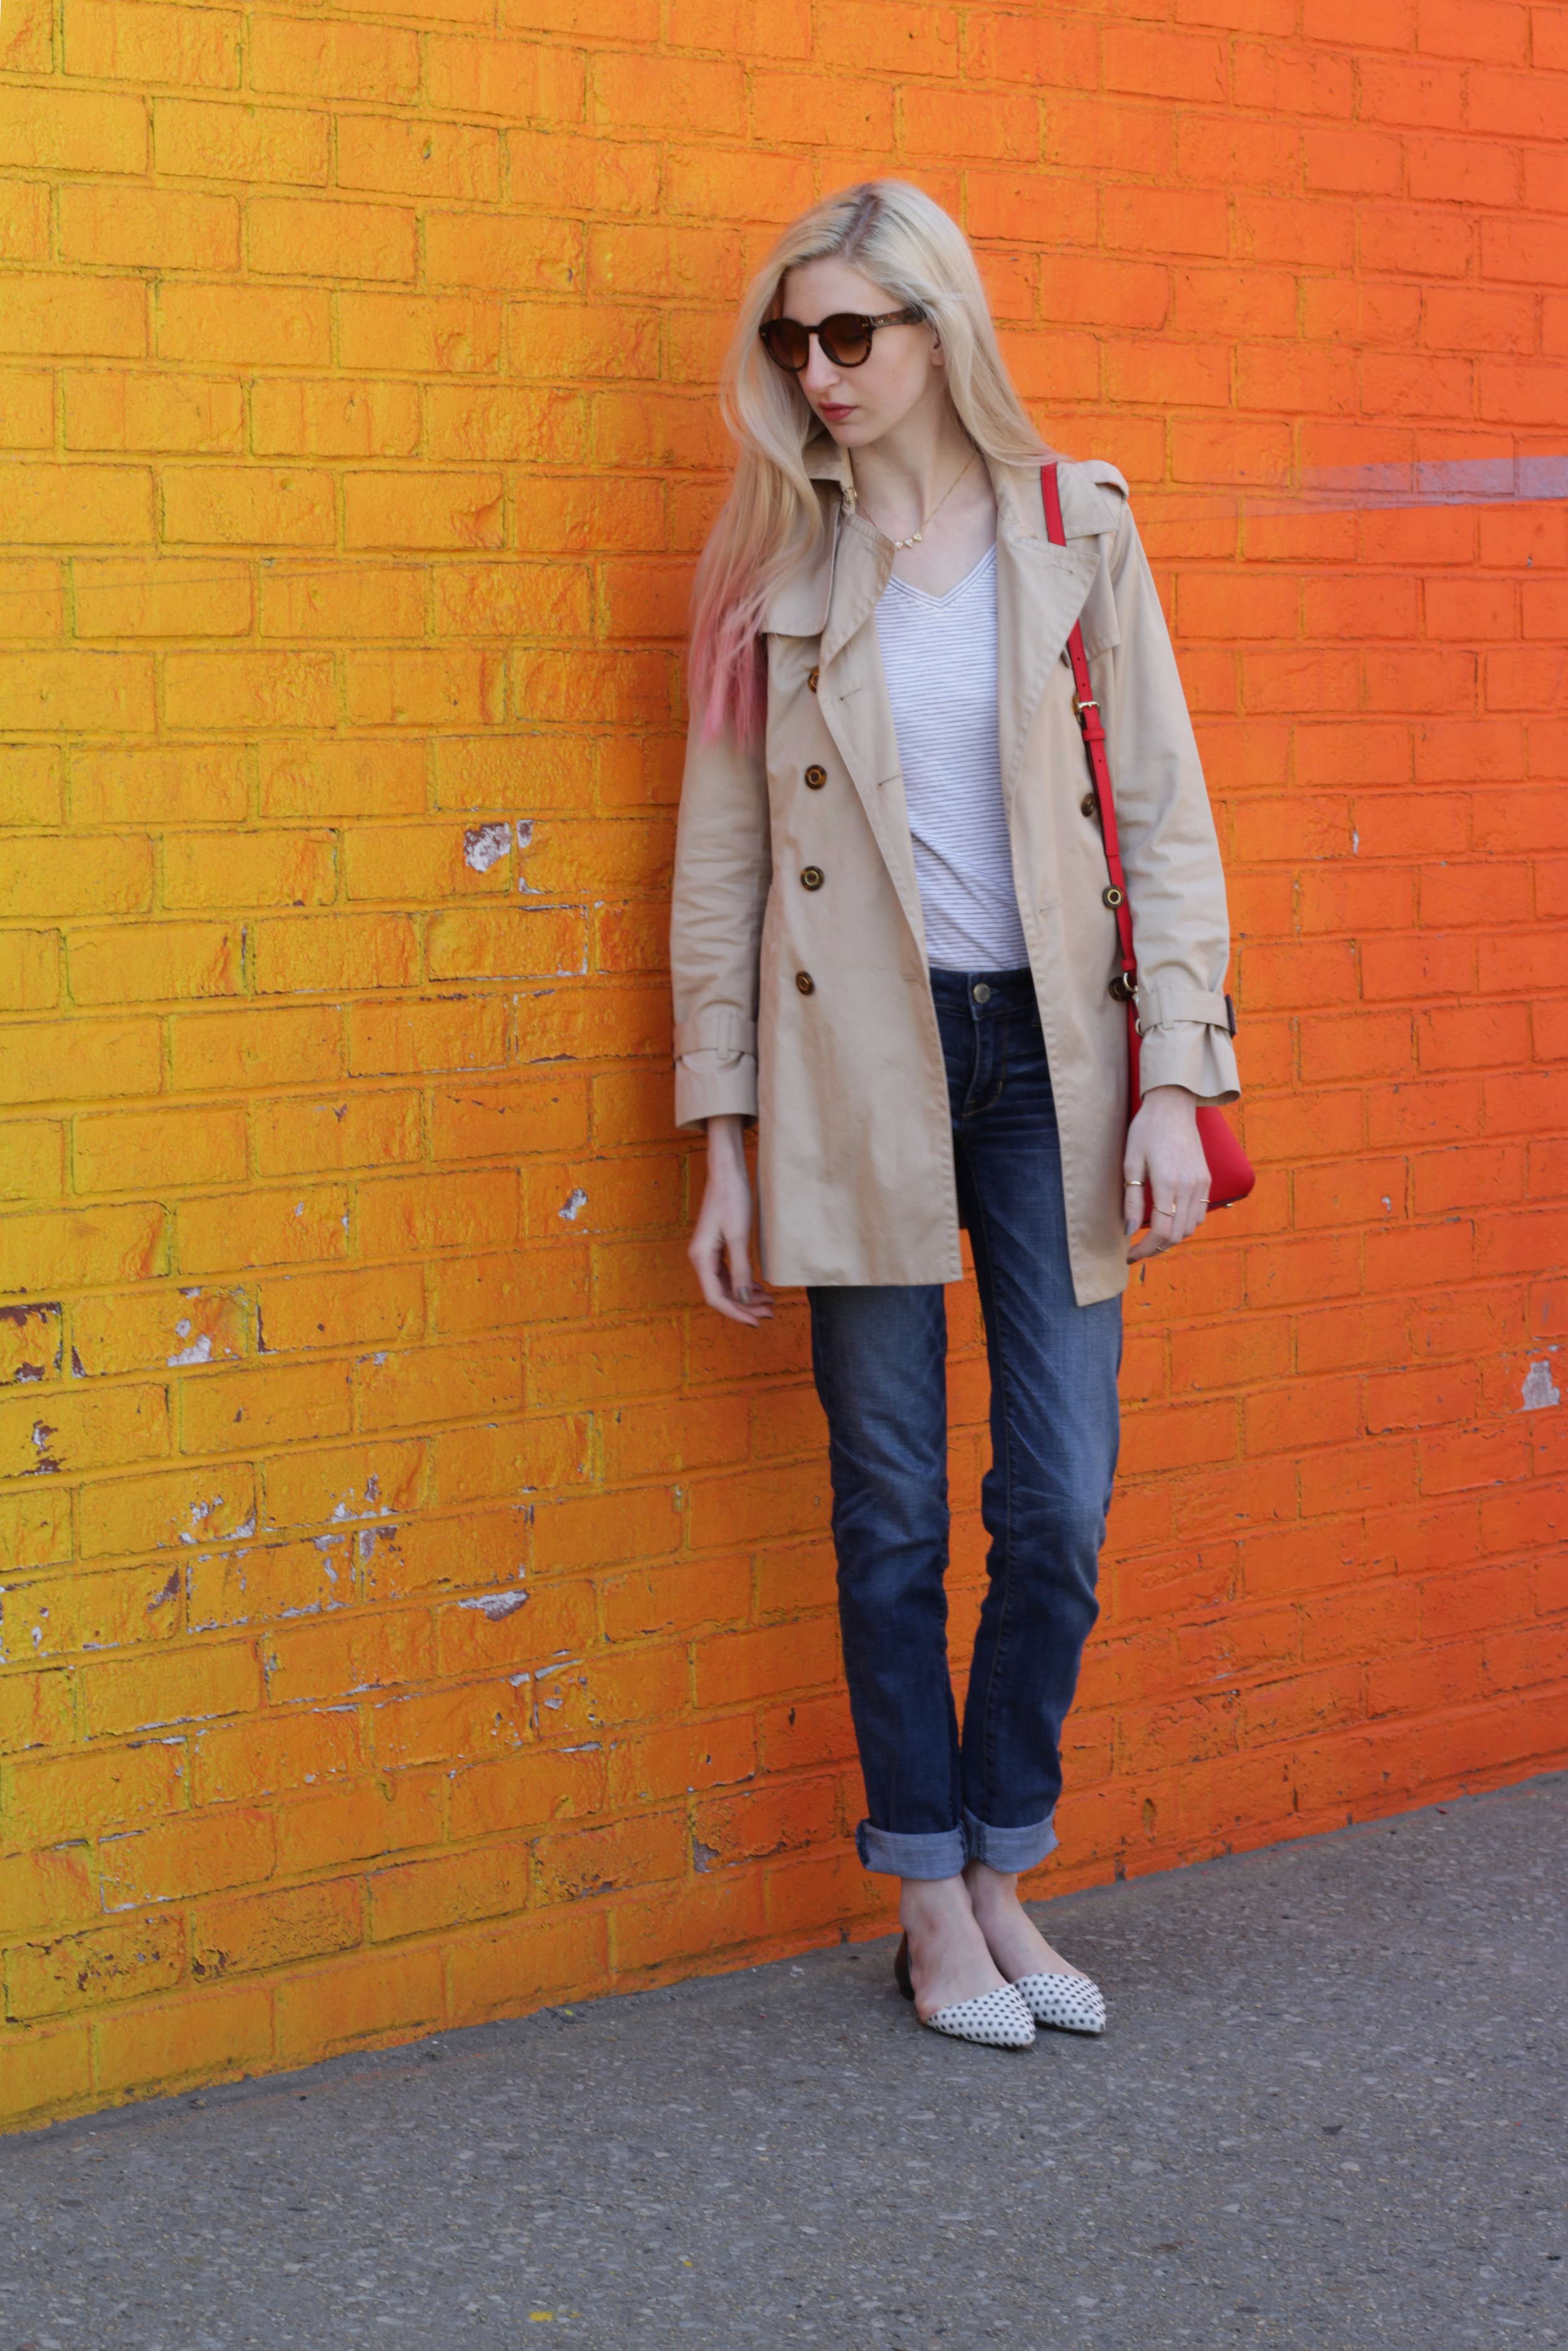 American Eagle jeans, LOFT striped v-neck tee, Banana Republic trench coat, LOFT pointed-toe d'orsay flats, Kate Spade Cedar Street Maise - Audra Koch - Southern New Yorker